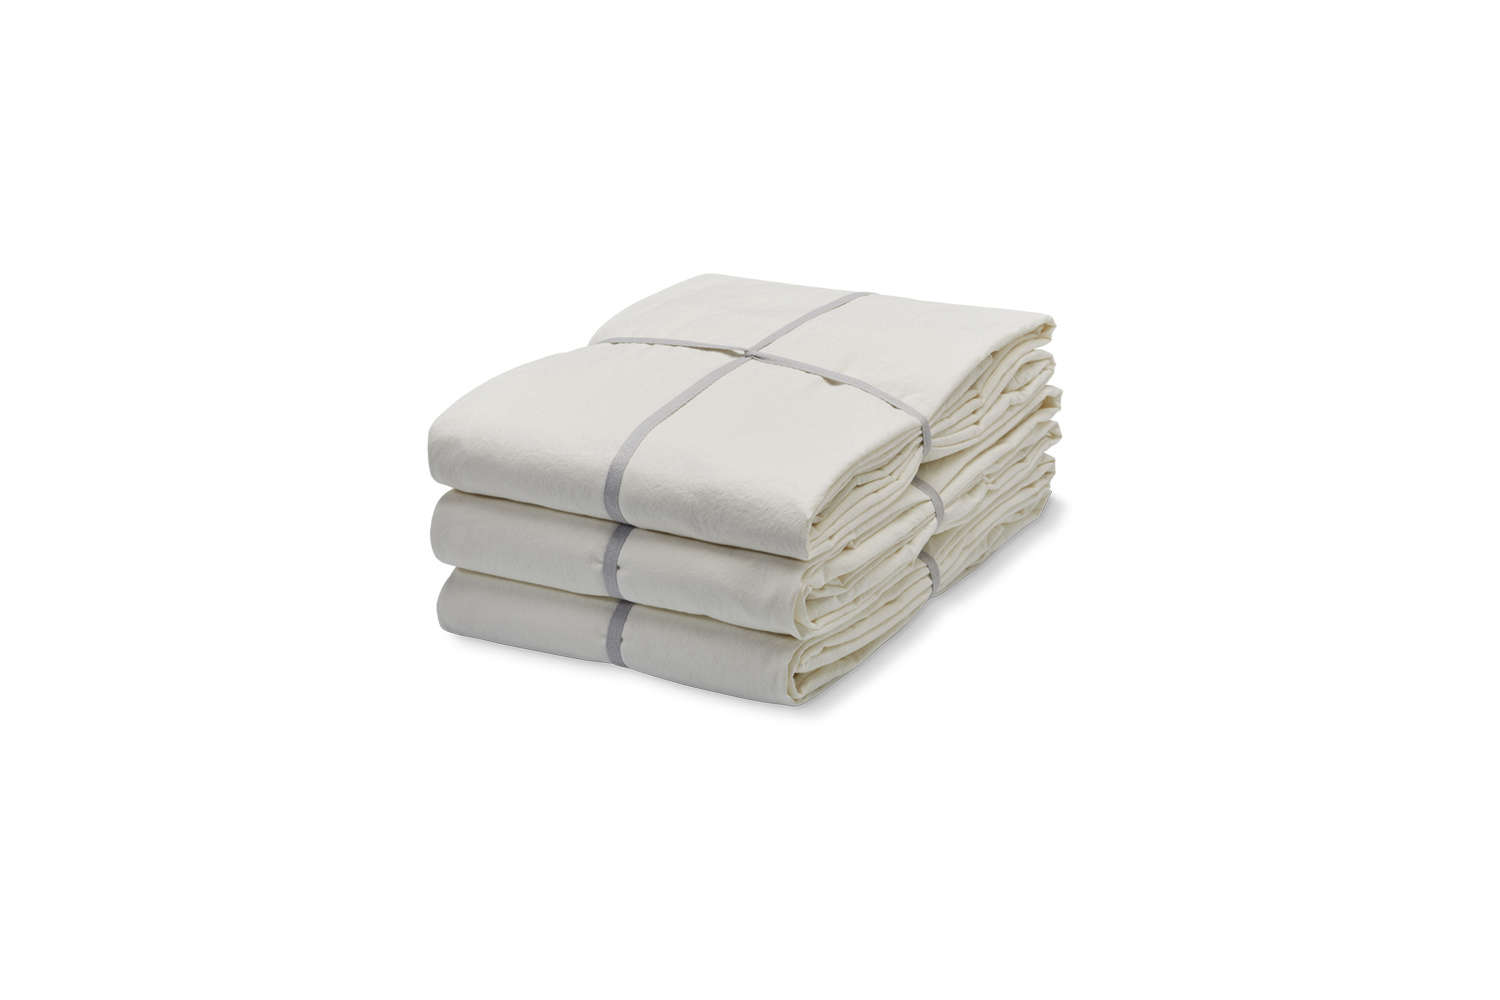 one of many good choices for simple white bedsheets is the merci optic white li 14